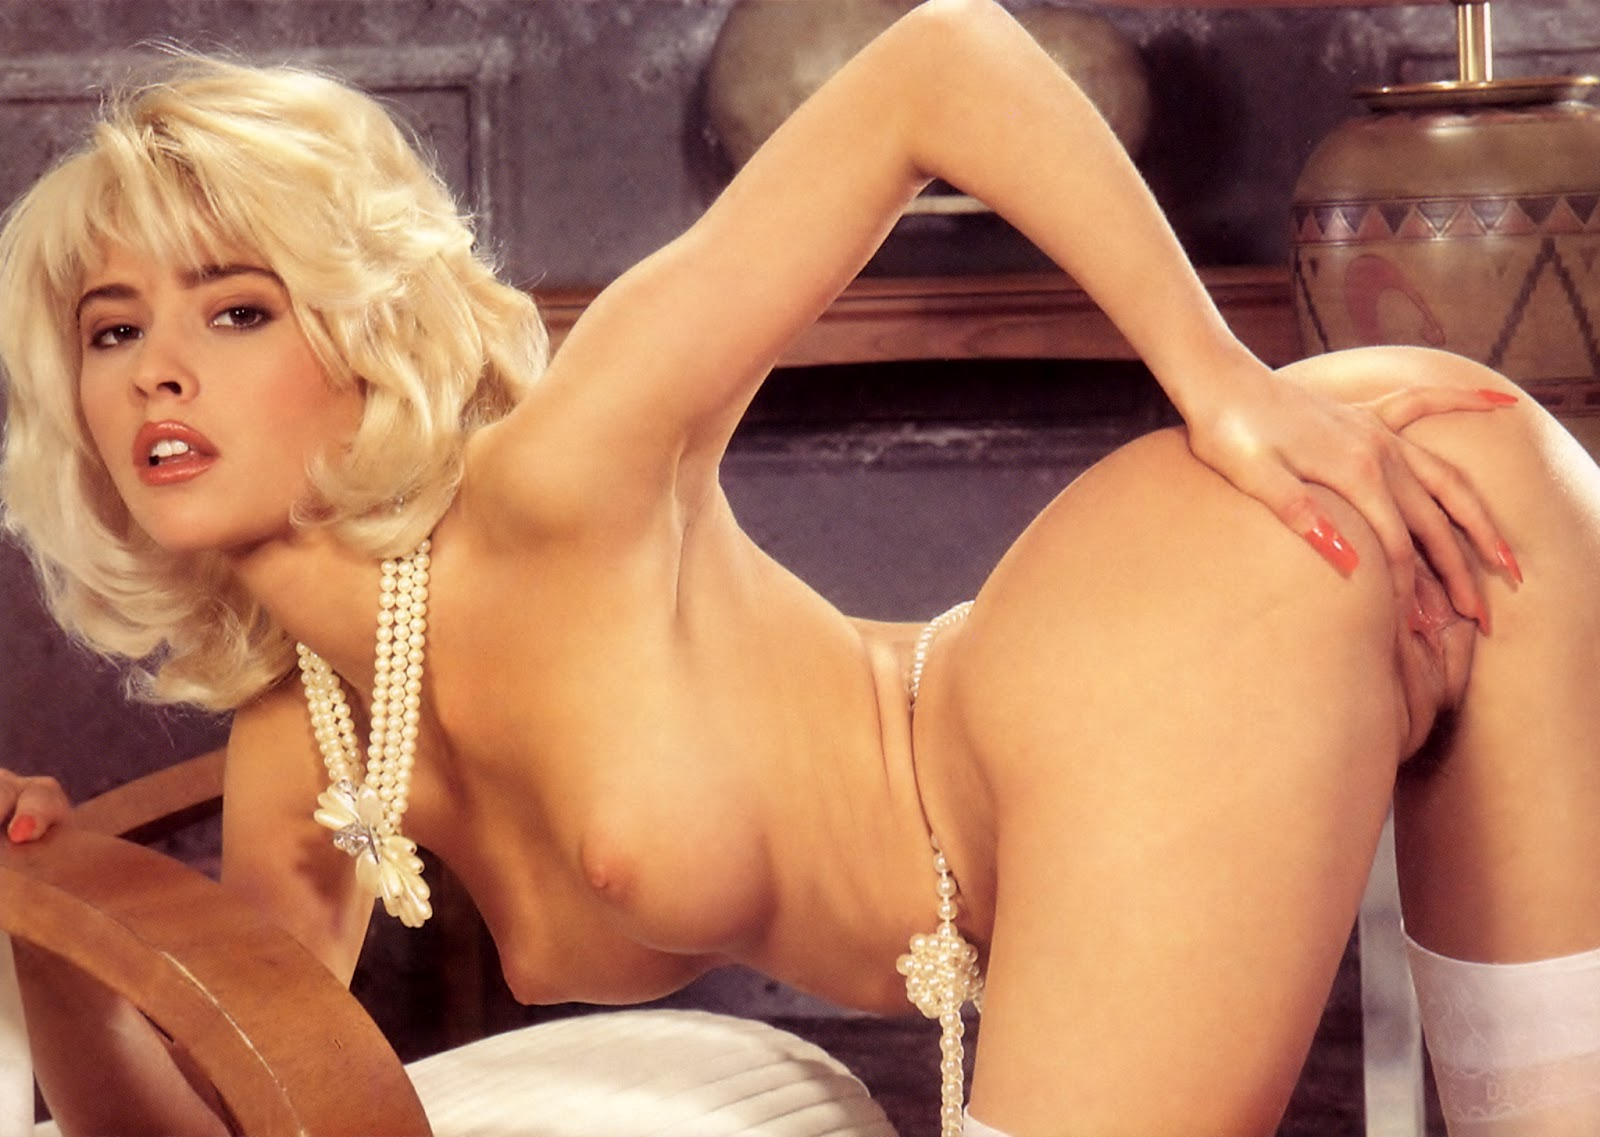 Jo Guest Nude Pictures